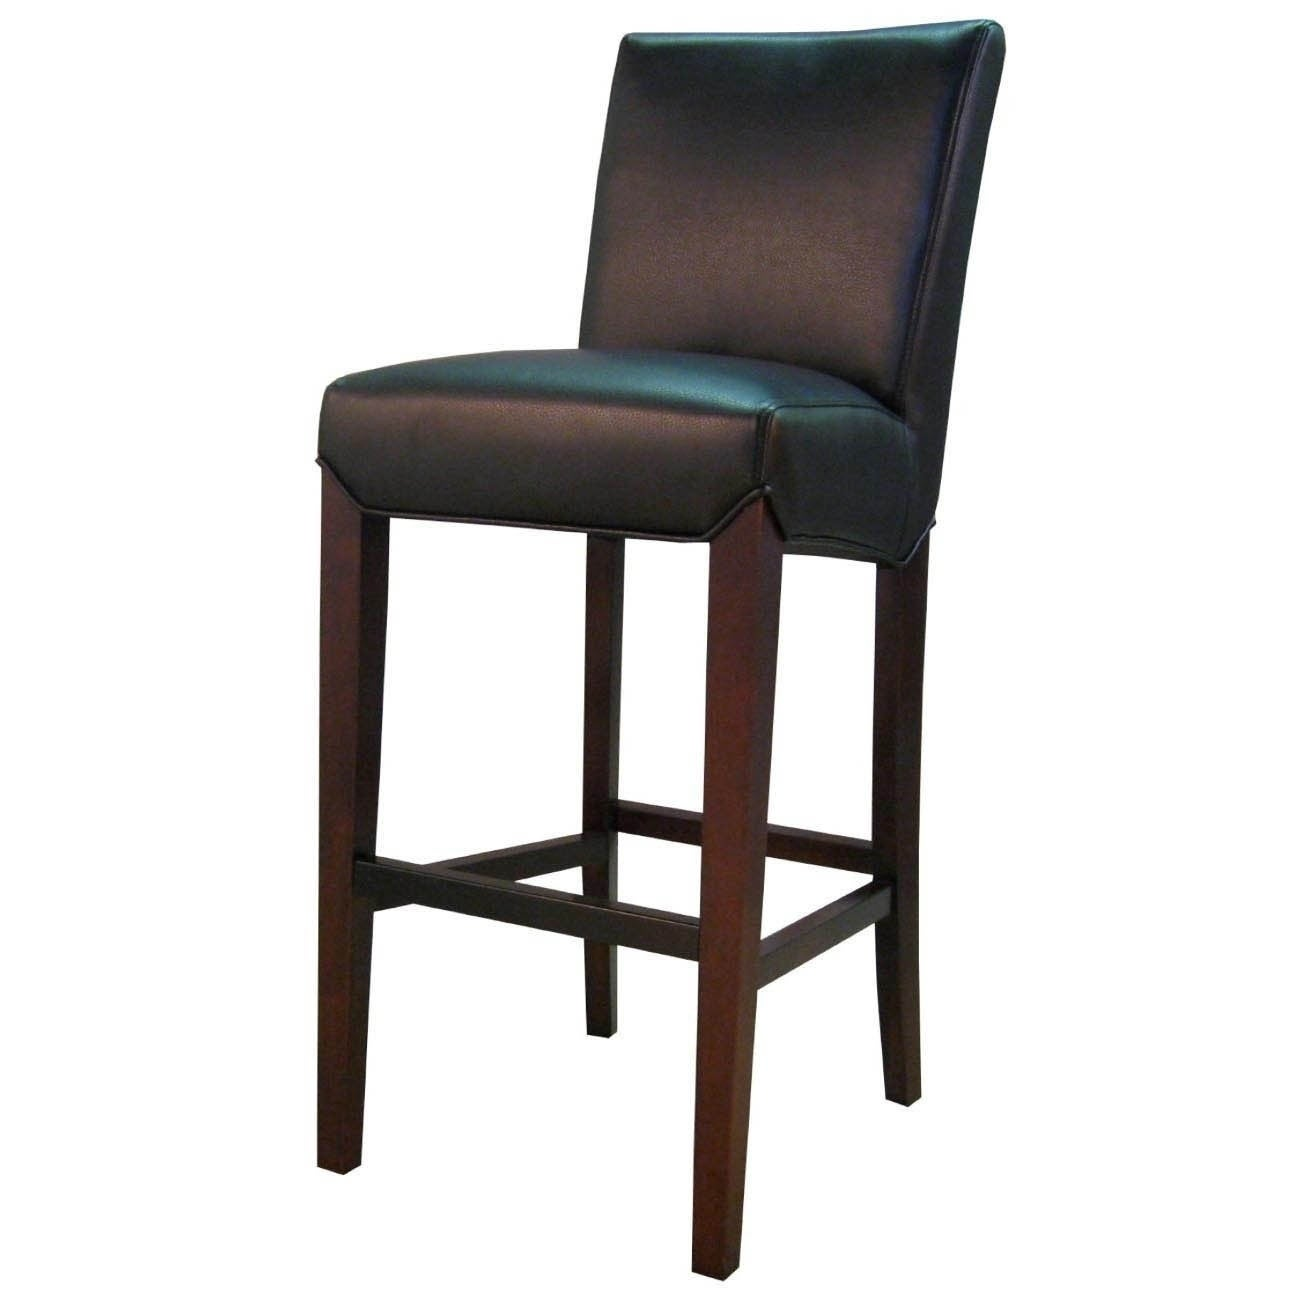 Shop milton bonded leather bar stool free shipping today overstock com 10246243